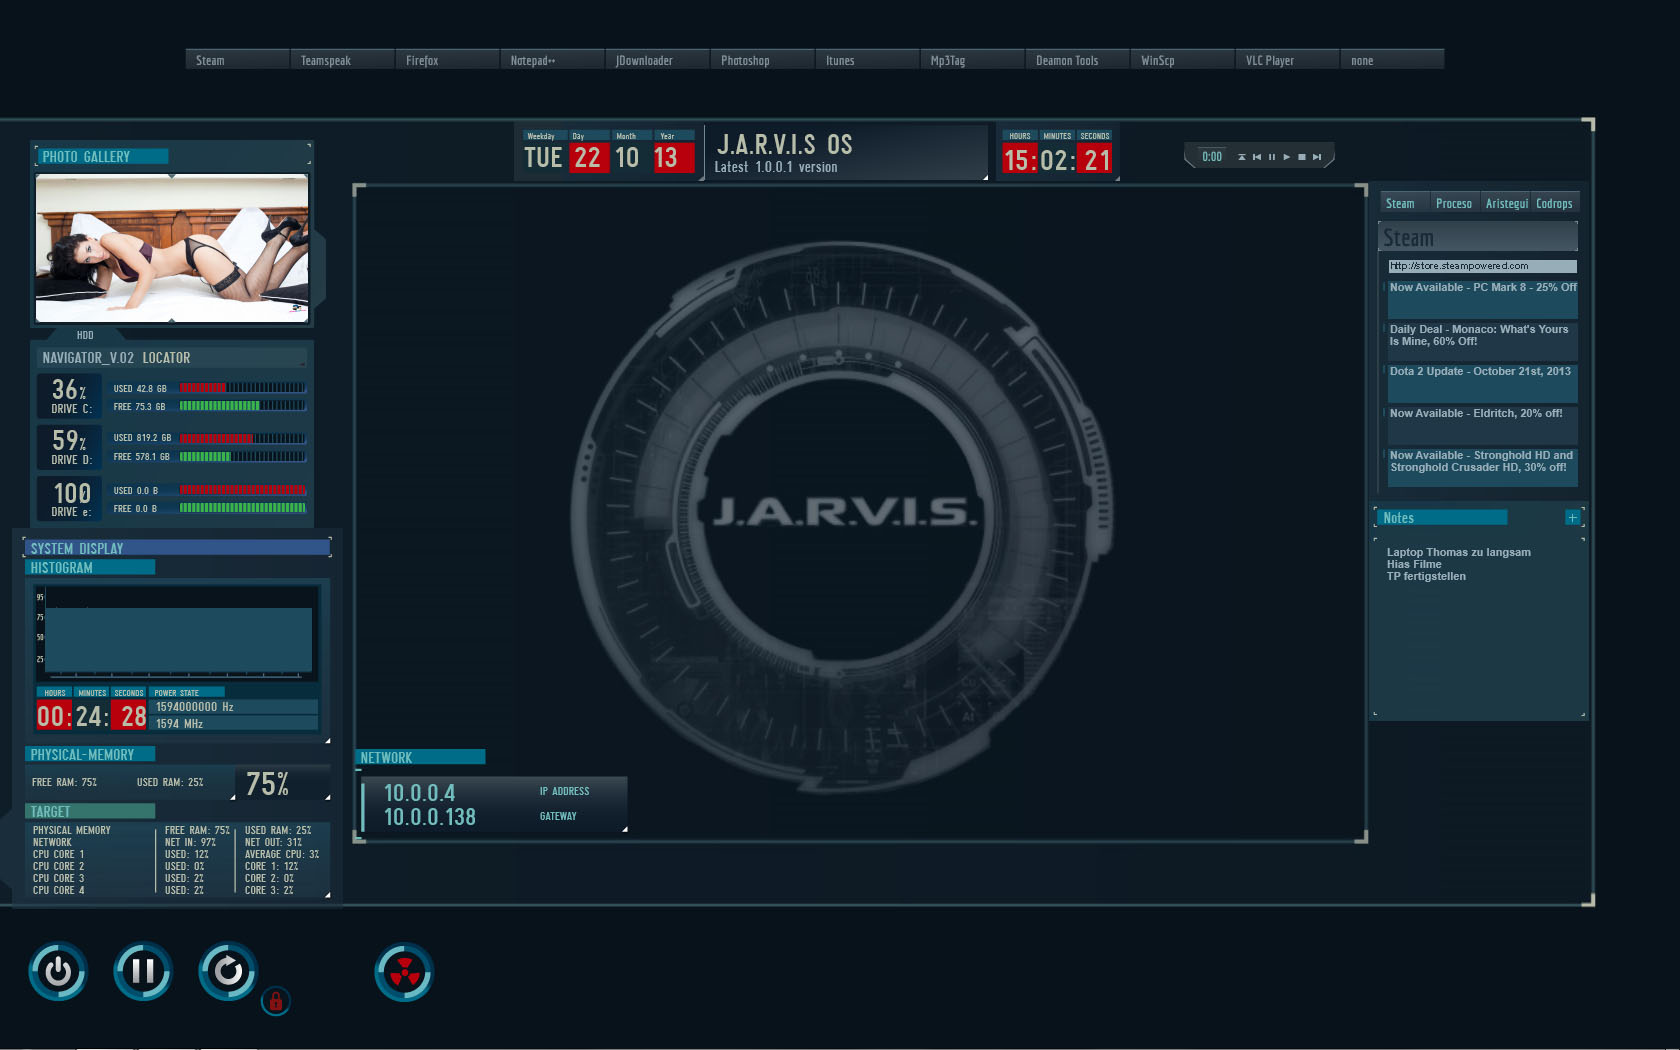 Jarvis highpitched os 1 1 1 by 5ynt3t1k on deviantart - Mainframe wallpaper ...